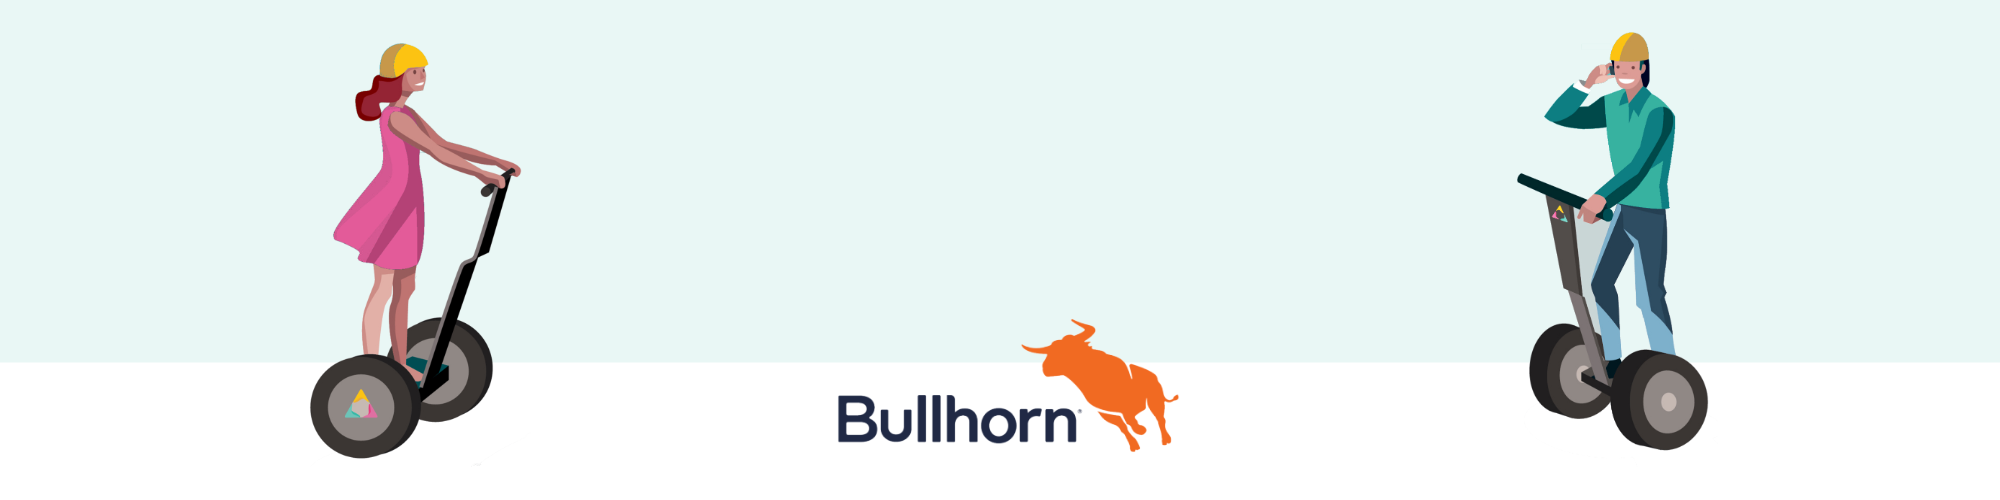 Bullhorn-Training-and-LinkedIn-Training-banner-NES